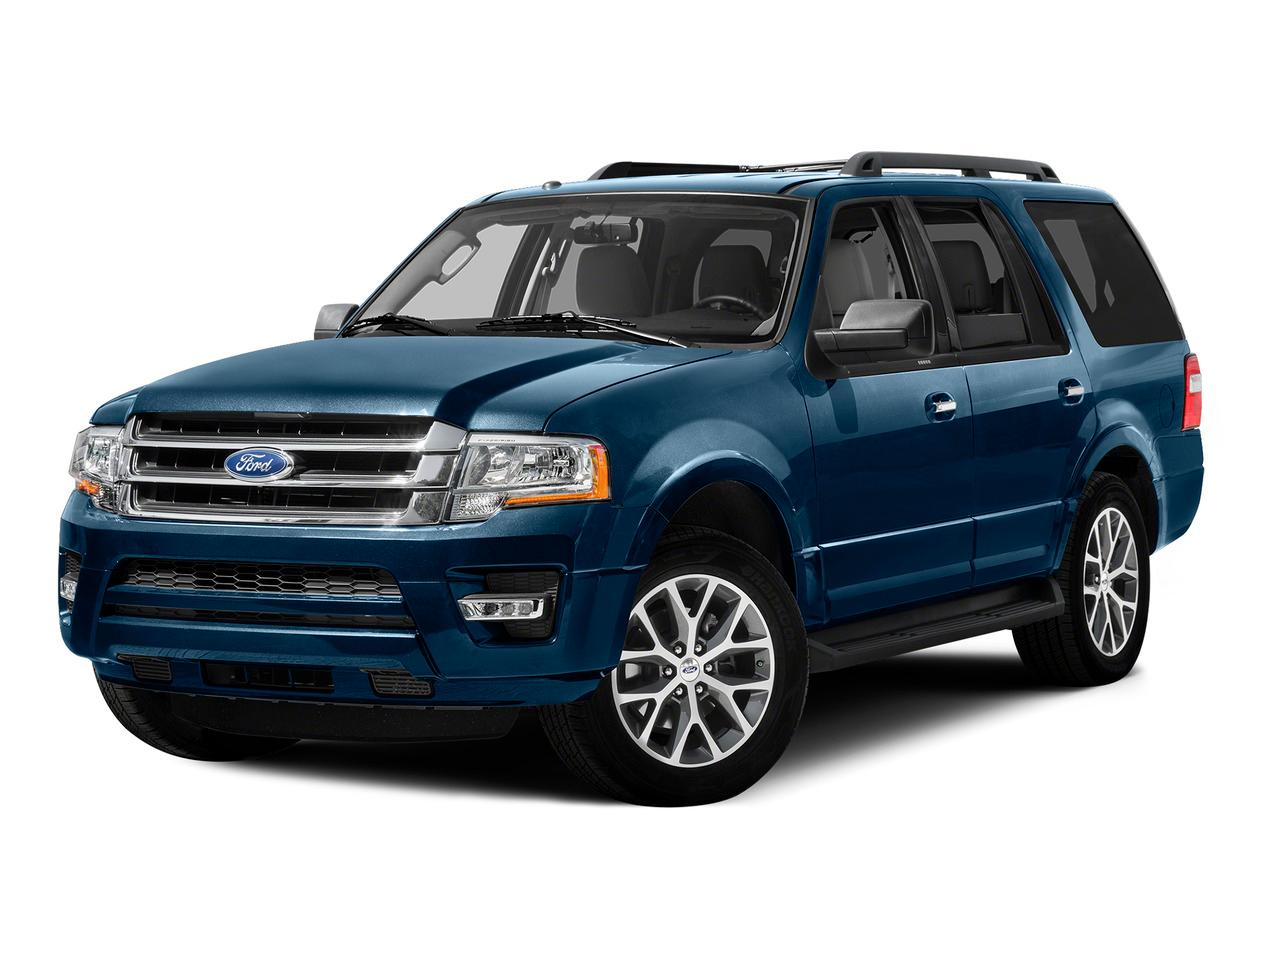 2015 Ford Expedition Vehicle Photo in Midland, TX 79703